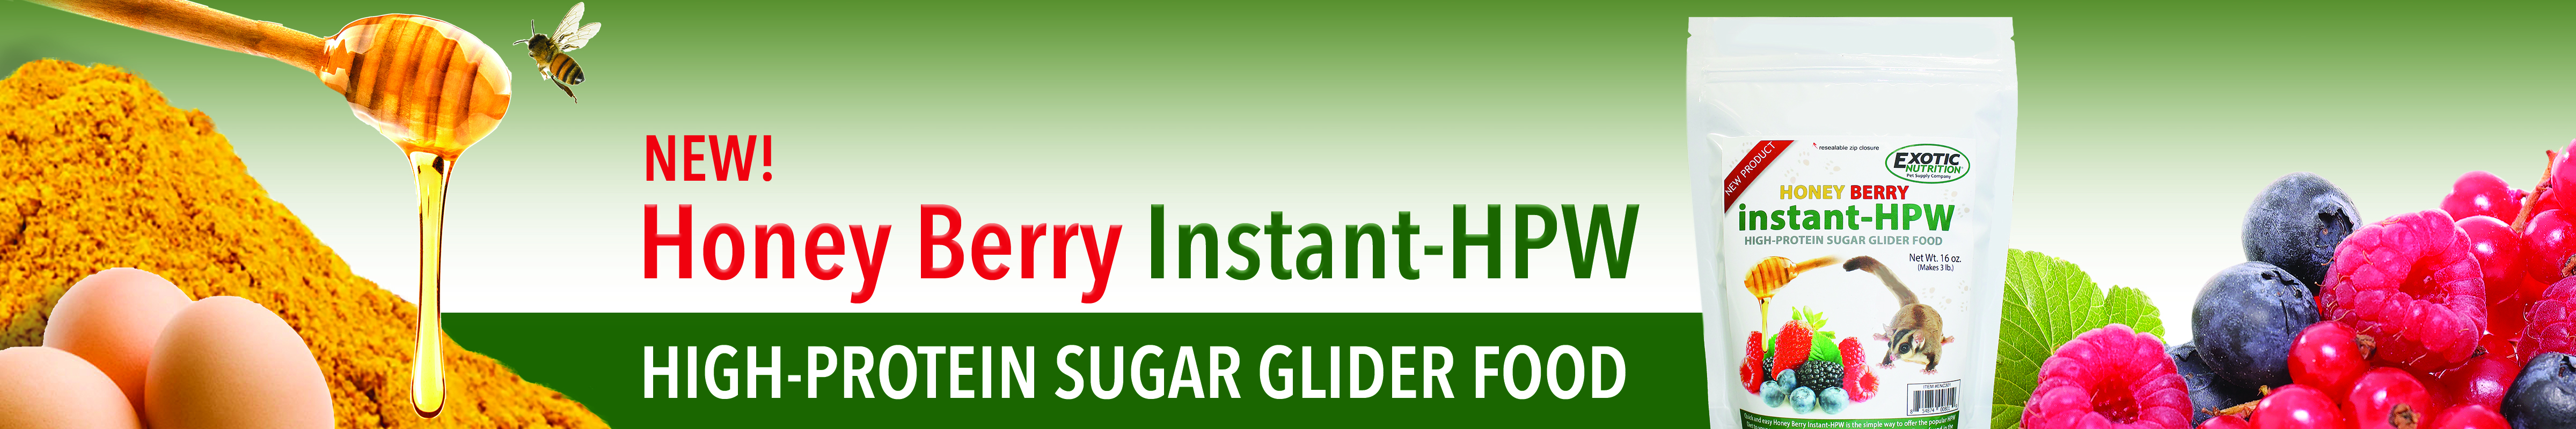 Honey Berry Instant HPW